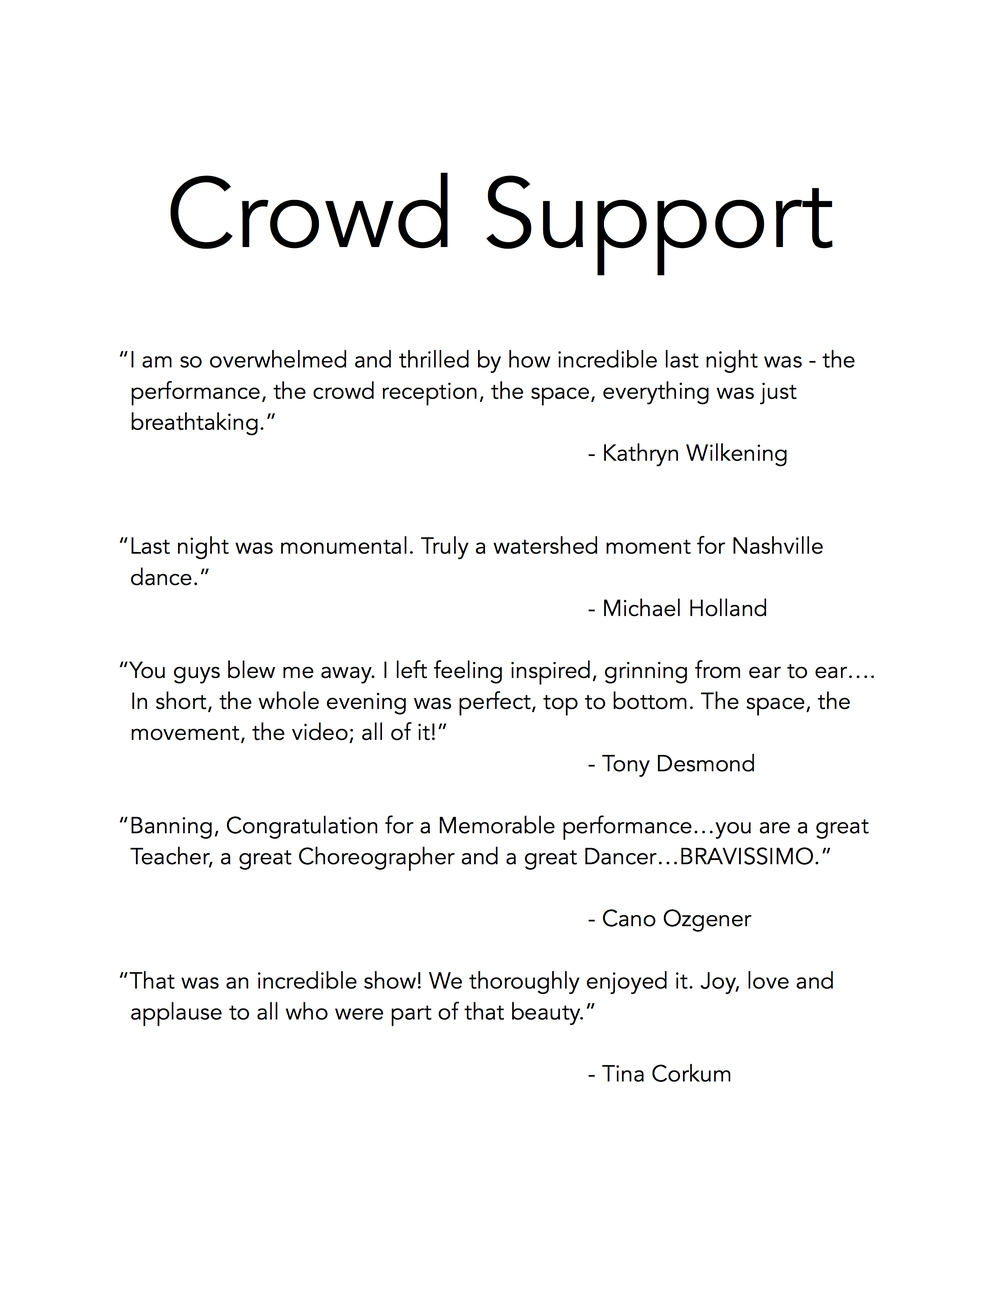 Crowd Support Quotes.jpg